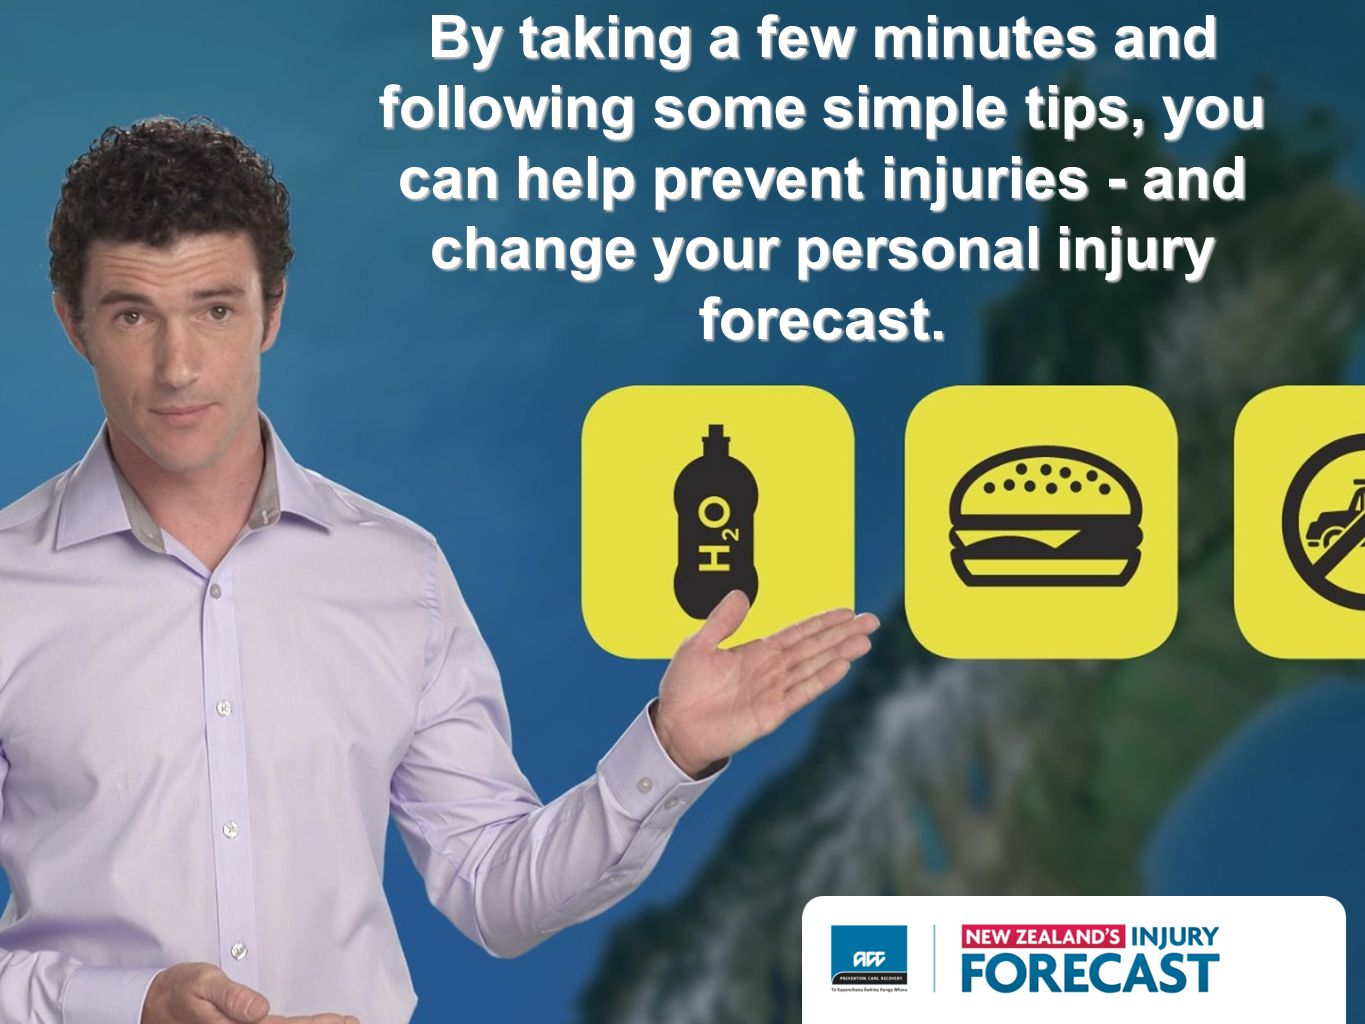 By taking a few minutes and following some simple tips, you can help prevent injuries - and change your personal injury forecast.